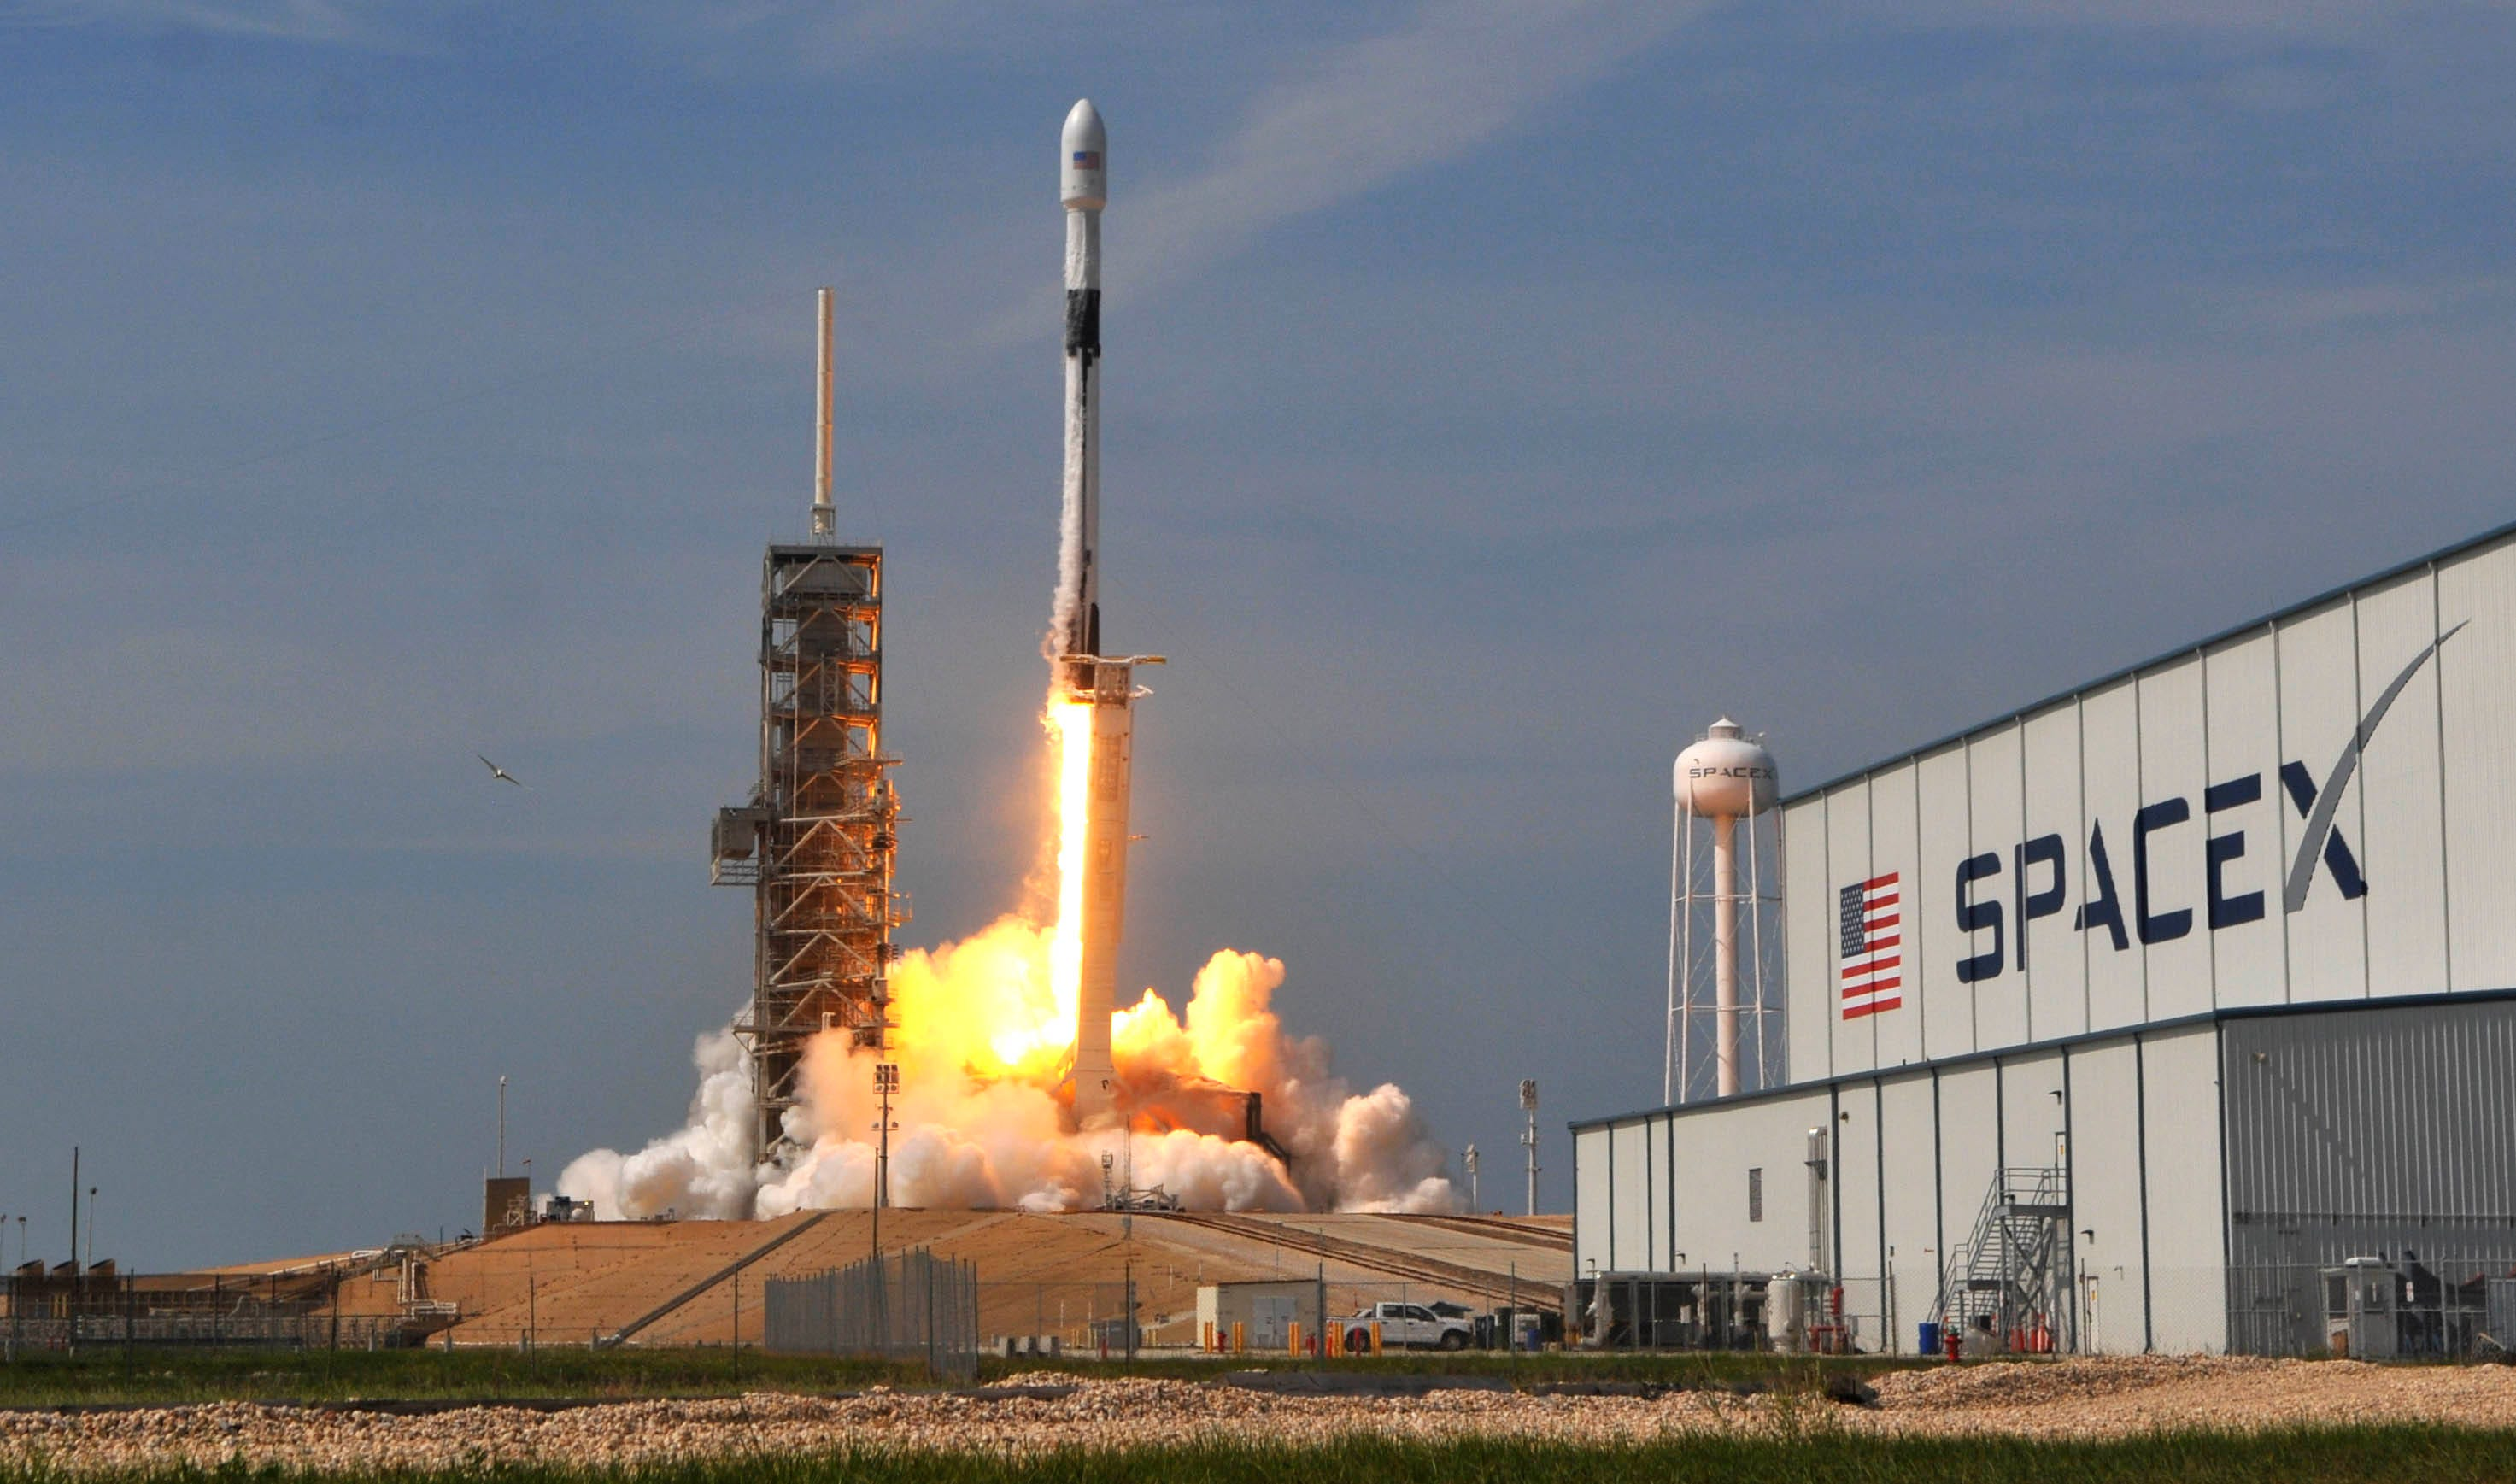 636616752642732439-crb051118-spacex-10- SpaceX test fires Falcon 9 ahead of early morning launch from Cape Canaveral next week